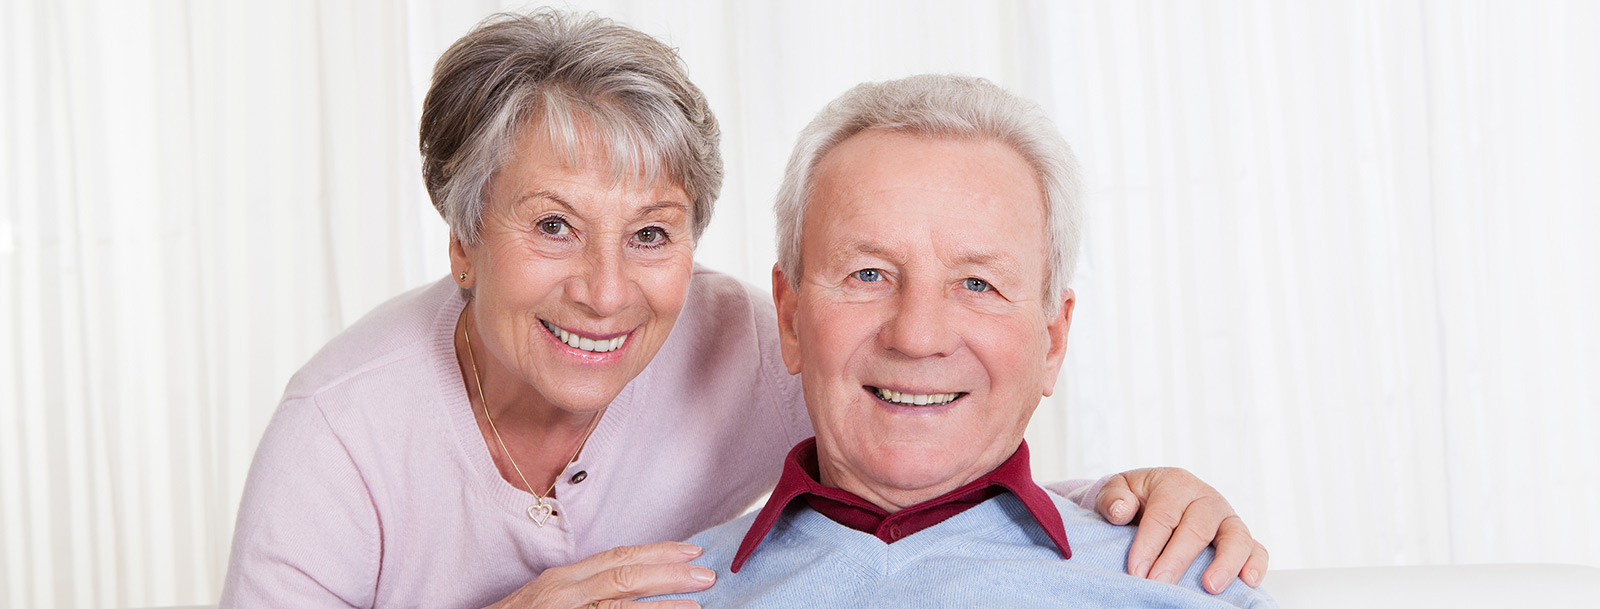 Helpful resources for the senior living facility in Fulton